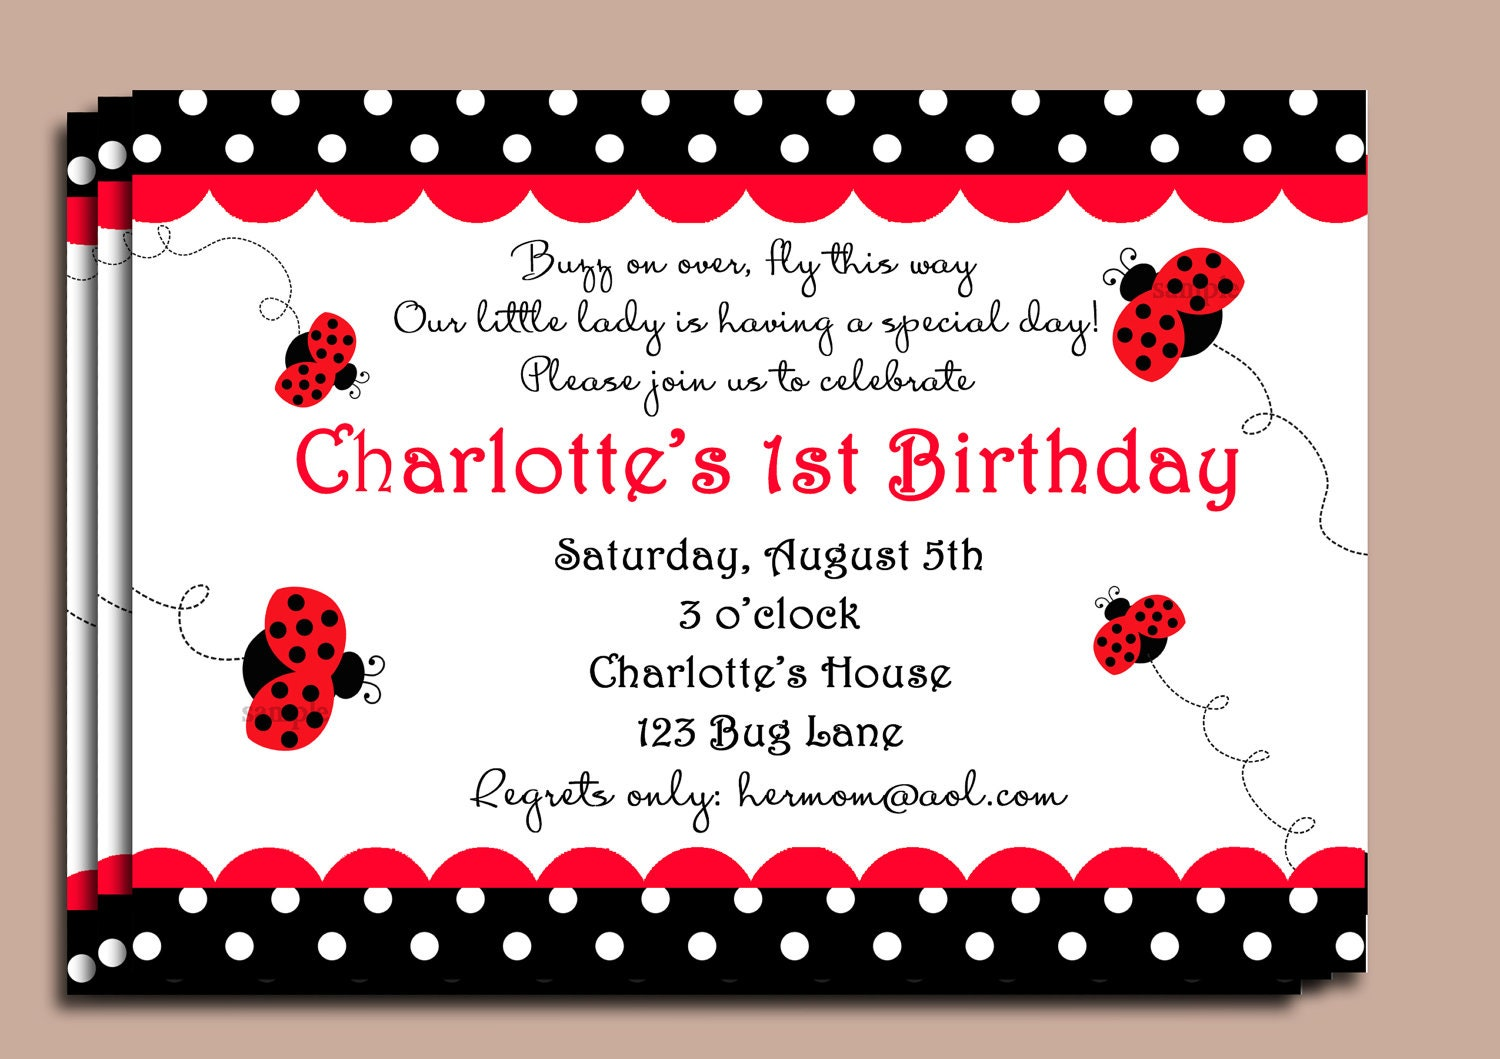 Ladybug photo invitations acurnamedia ladybug photo invitations solutioingenieria Choice Image